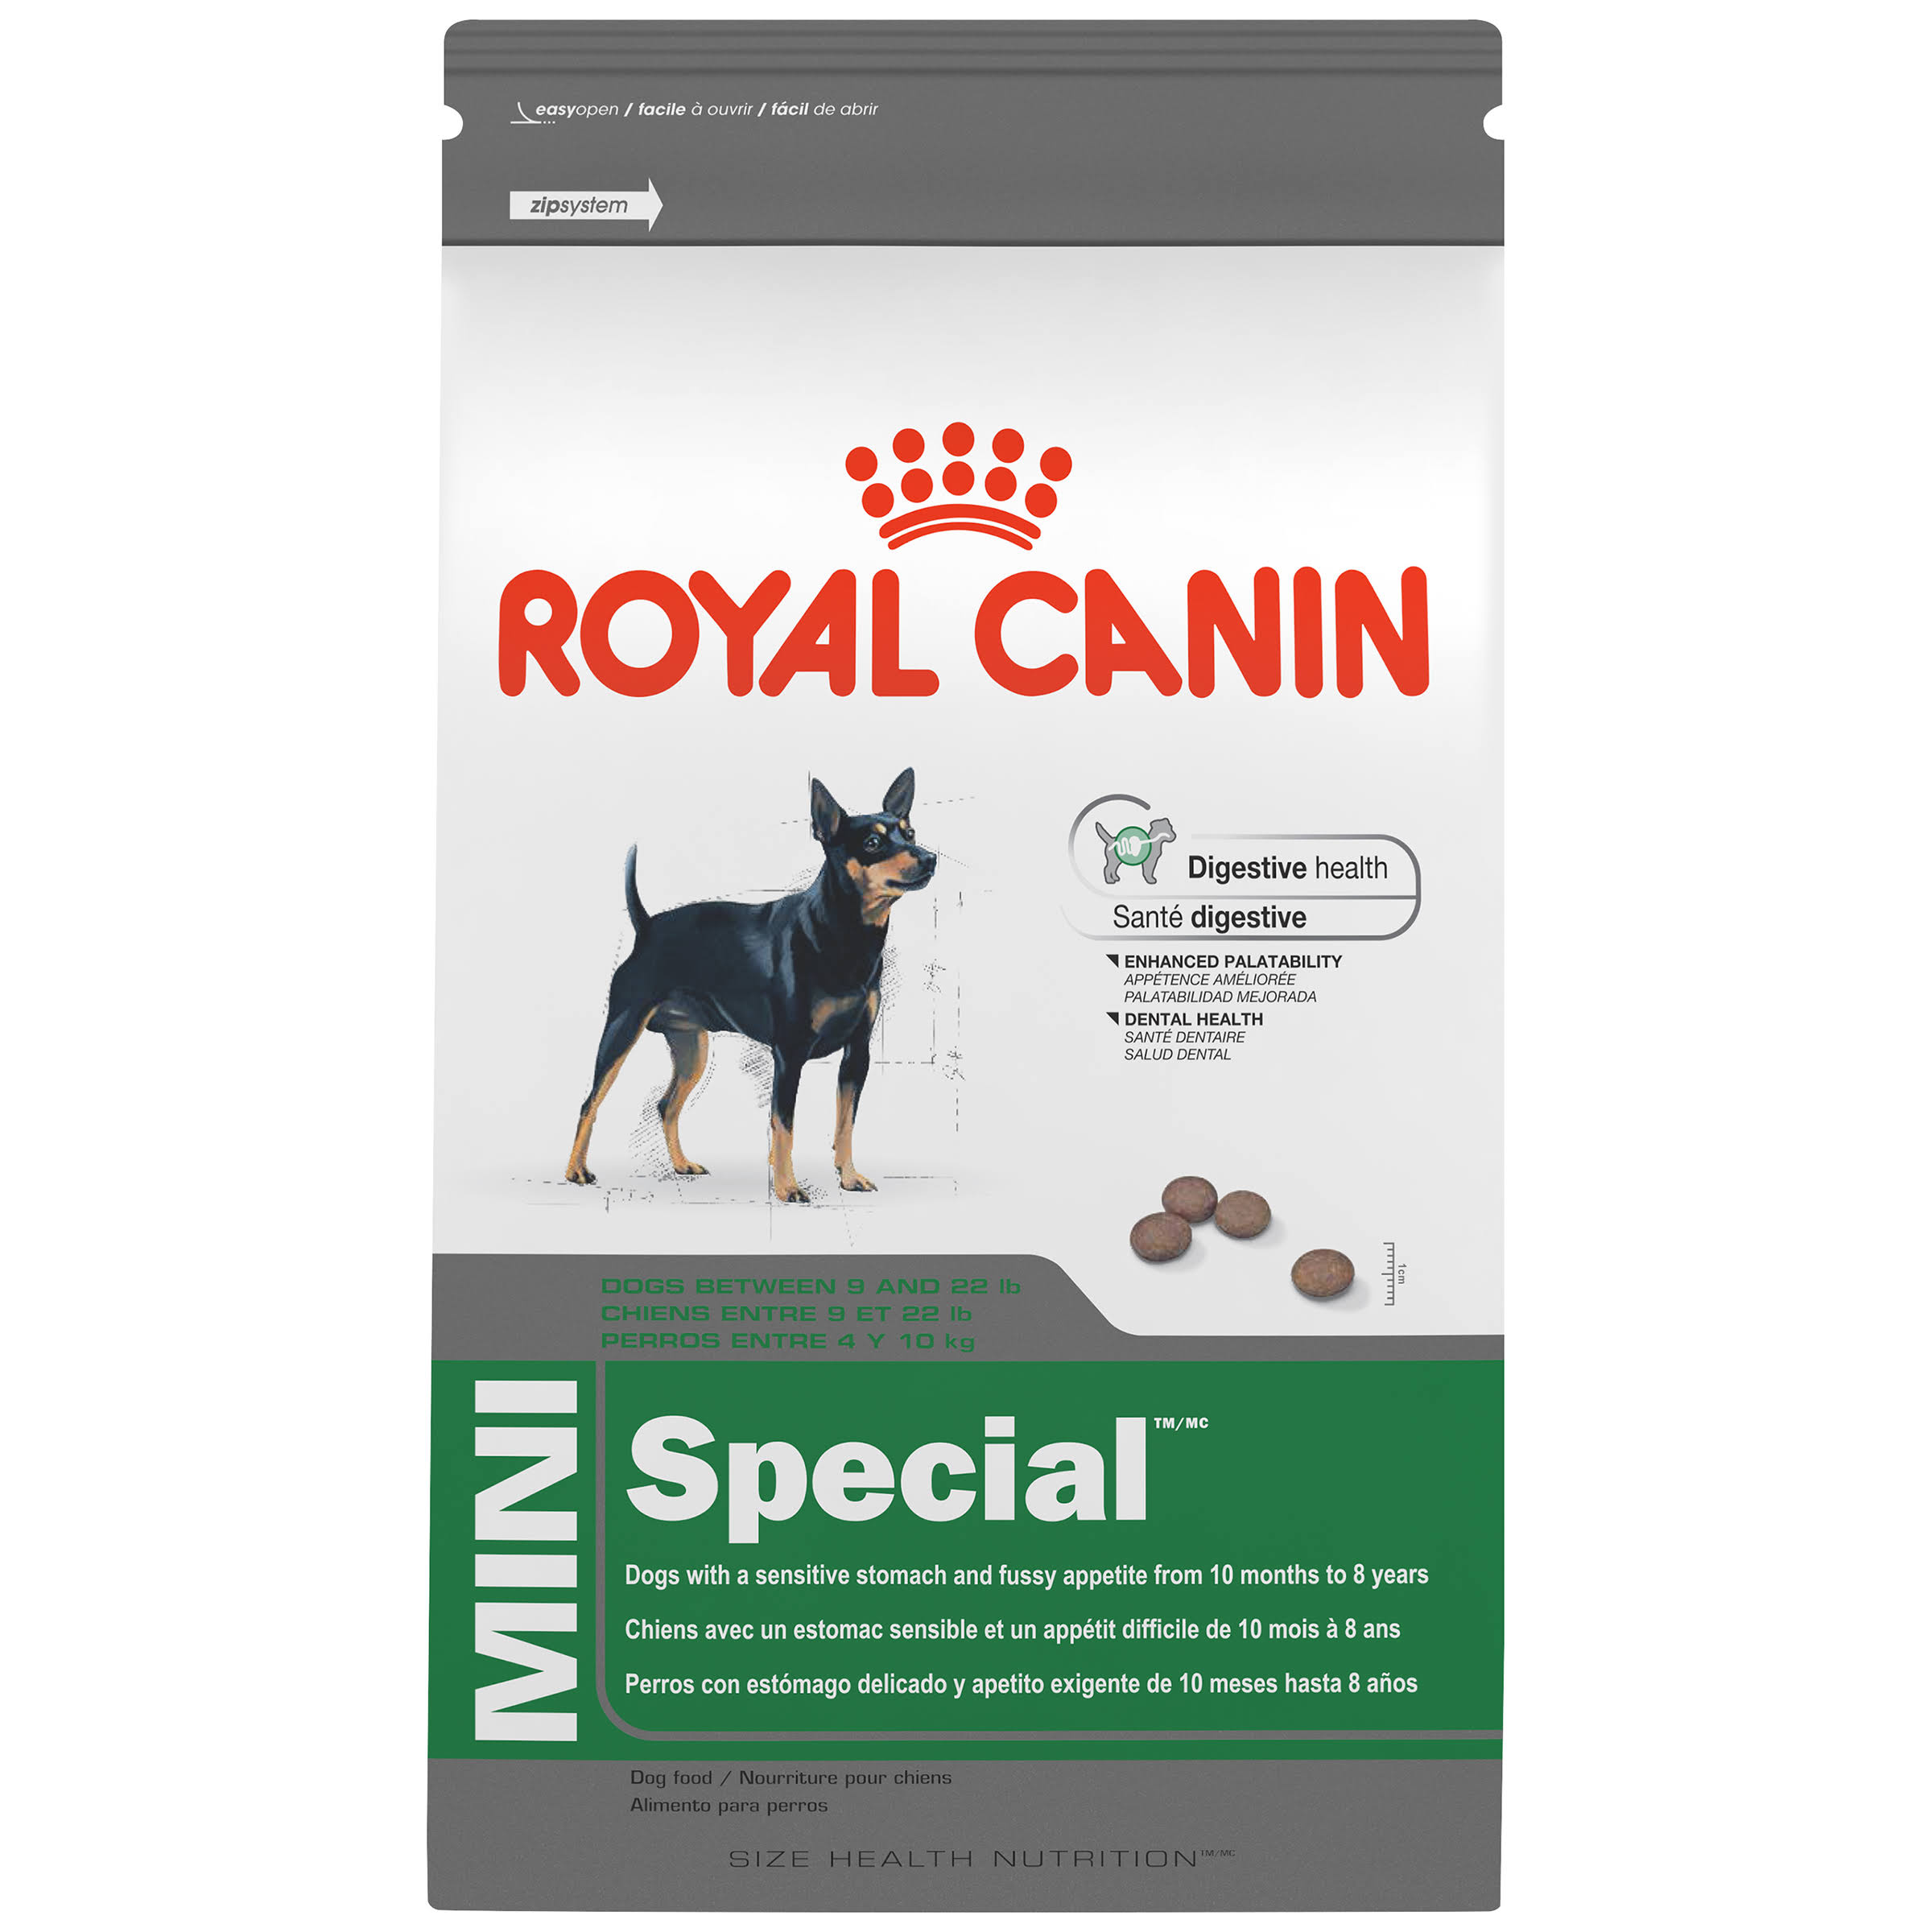 Royal Canin Rl45104 Size Health Nutrition Mini Special Dry Dog Food - 3.5lbs